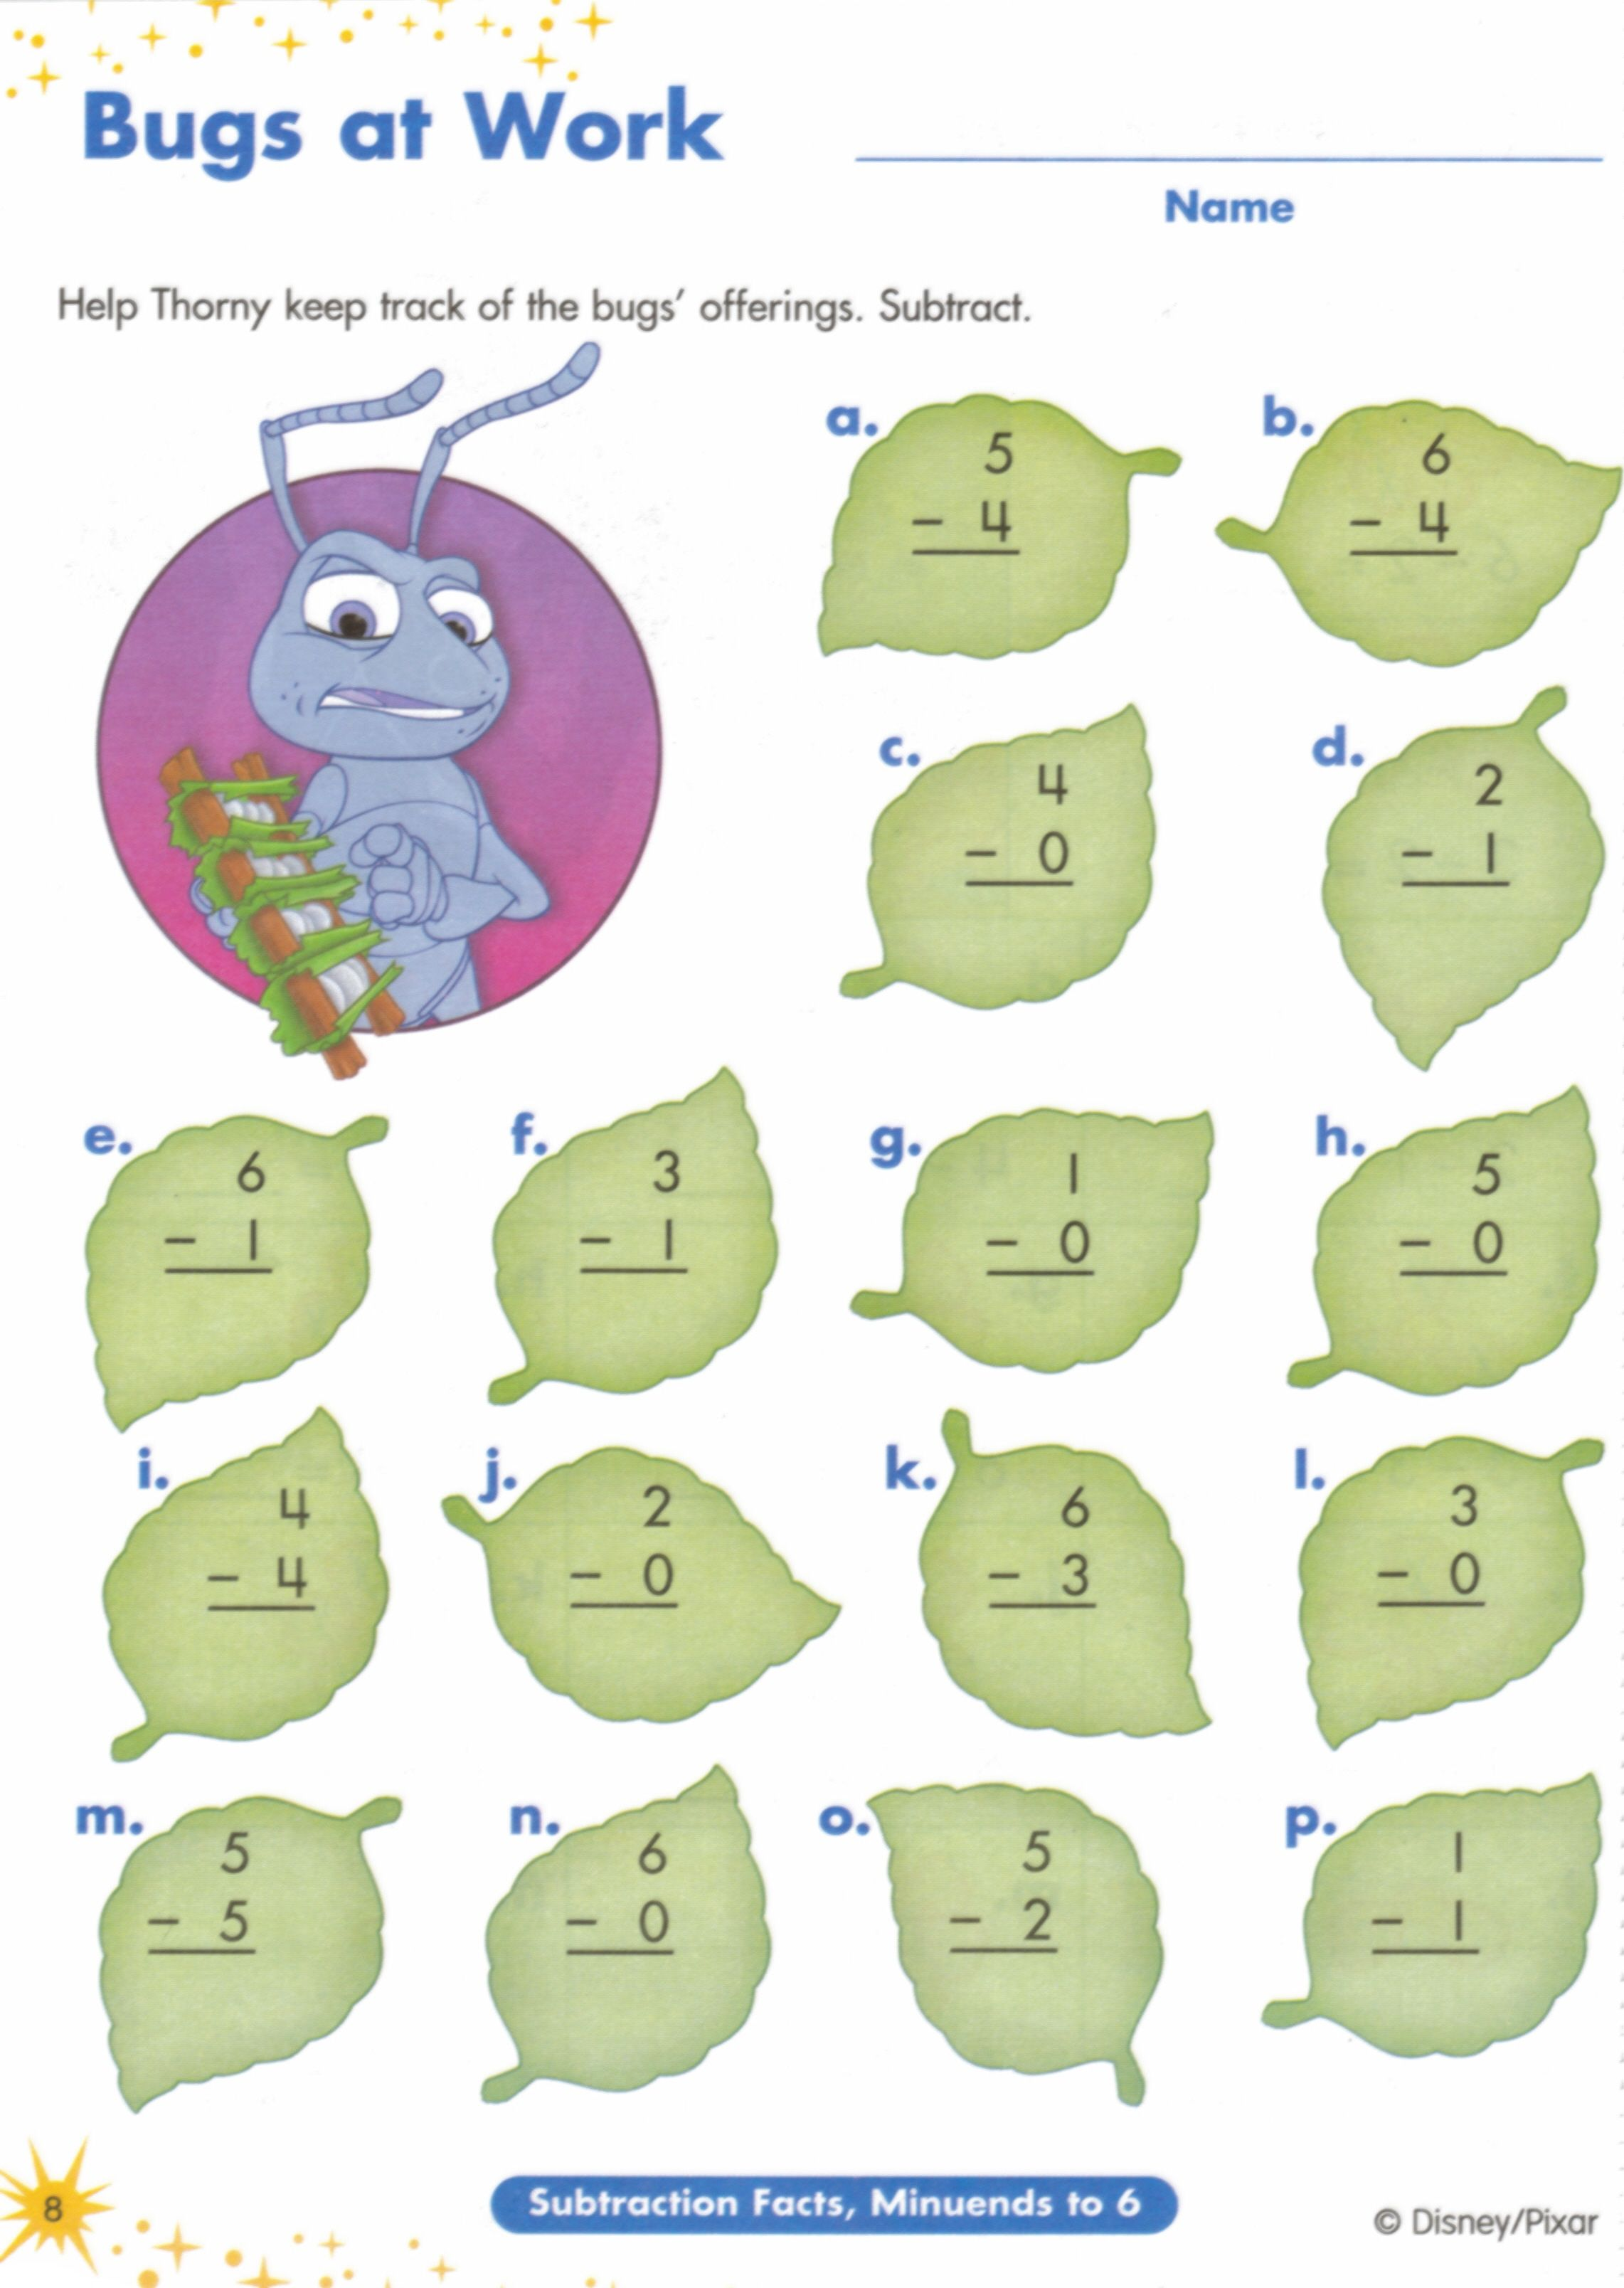 Proatmealus  Terrific  Images About Worksheets On Pinterest  Fun Facts For Kids  With Great  Images About Worksheets On Pinterest  Fun Facts For Kids Earth Day Worksheets And Jungles With Cool Numbers For Kids Worksheet Also Singular Plural Worksheets For Grade  In Addition Animals And Their Habitats Worksheets And Worksheets On Setting As Well As Skip Counting By  Worksheets For Kindergarten Additionally Free Printable Health Worksheets For High School From Pinterestcom With Proatmealus  Great  Images About Worksheets On Pinterest  Fun Facts For Kids  With Cool  Images About Worksheets On Pinterest  Fun Facts For Kids Earth Day Worksheets And Jungles And Terrific Numbers For Kids Worksheet Also Singular Plural Worksheets For Grade  In Addition Animals And Their Habitats Worksheets From Pinterestcom